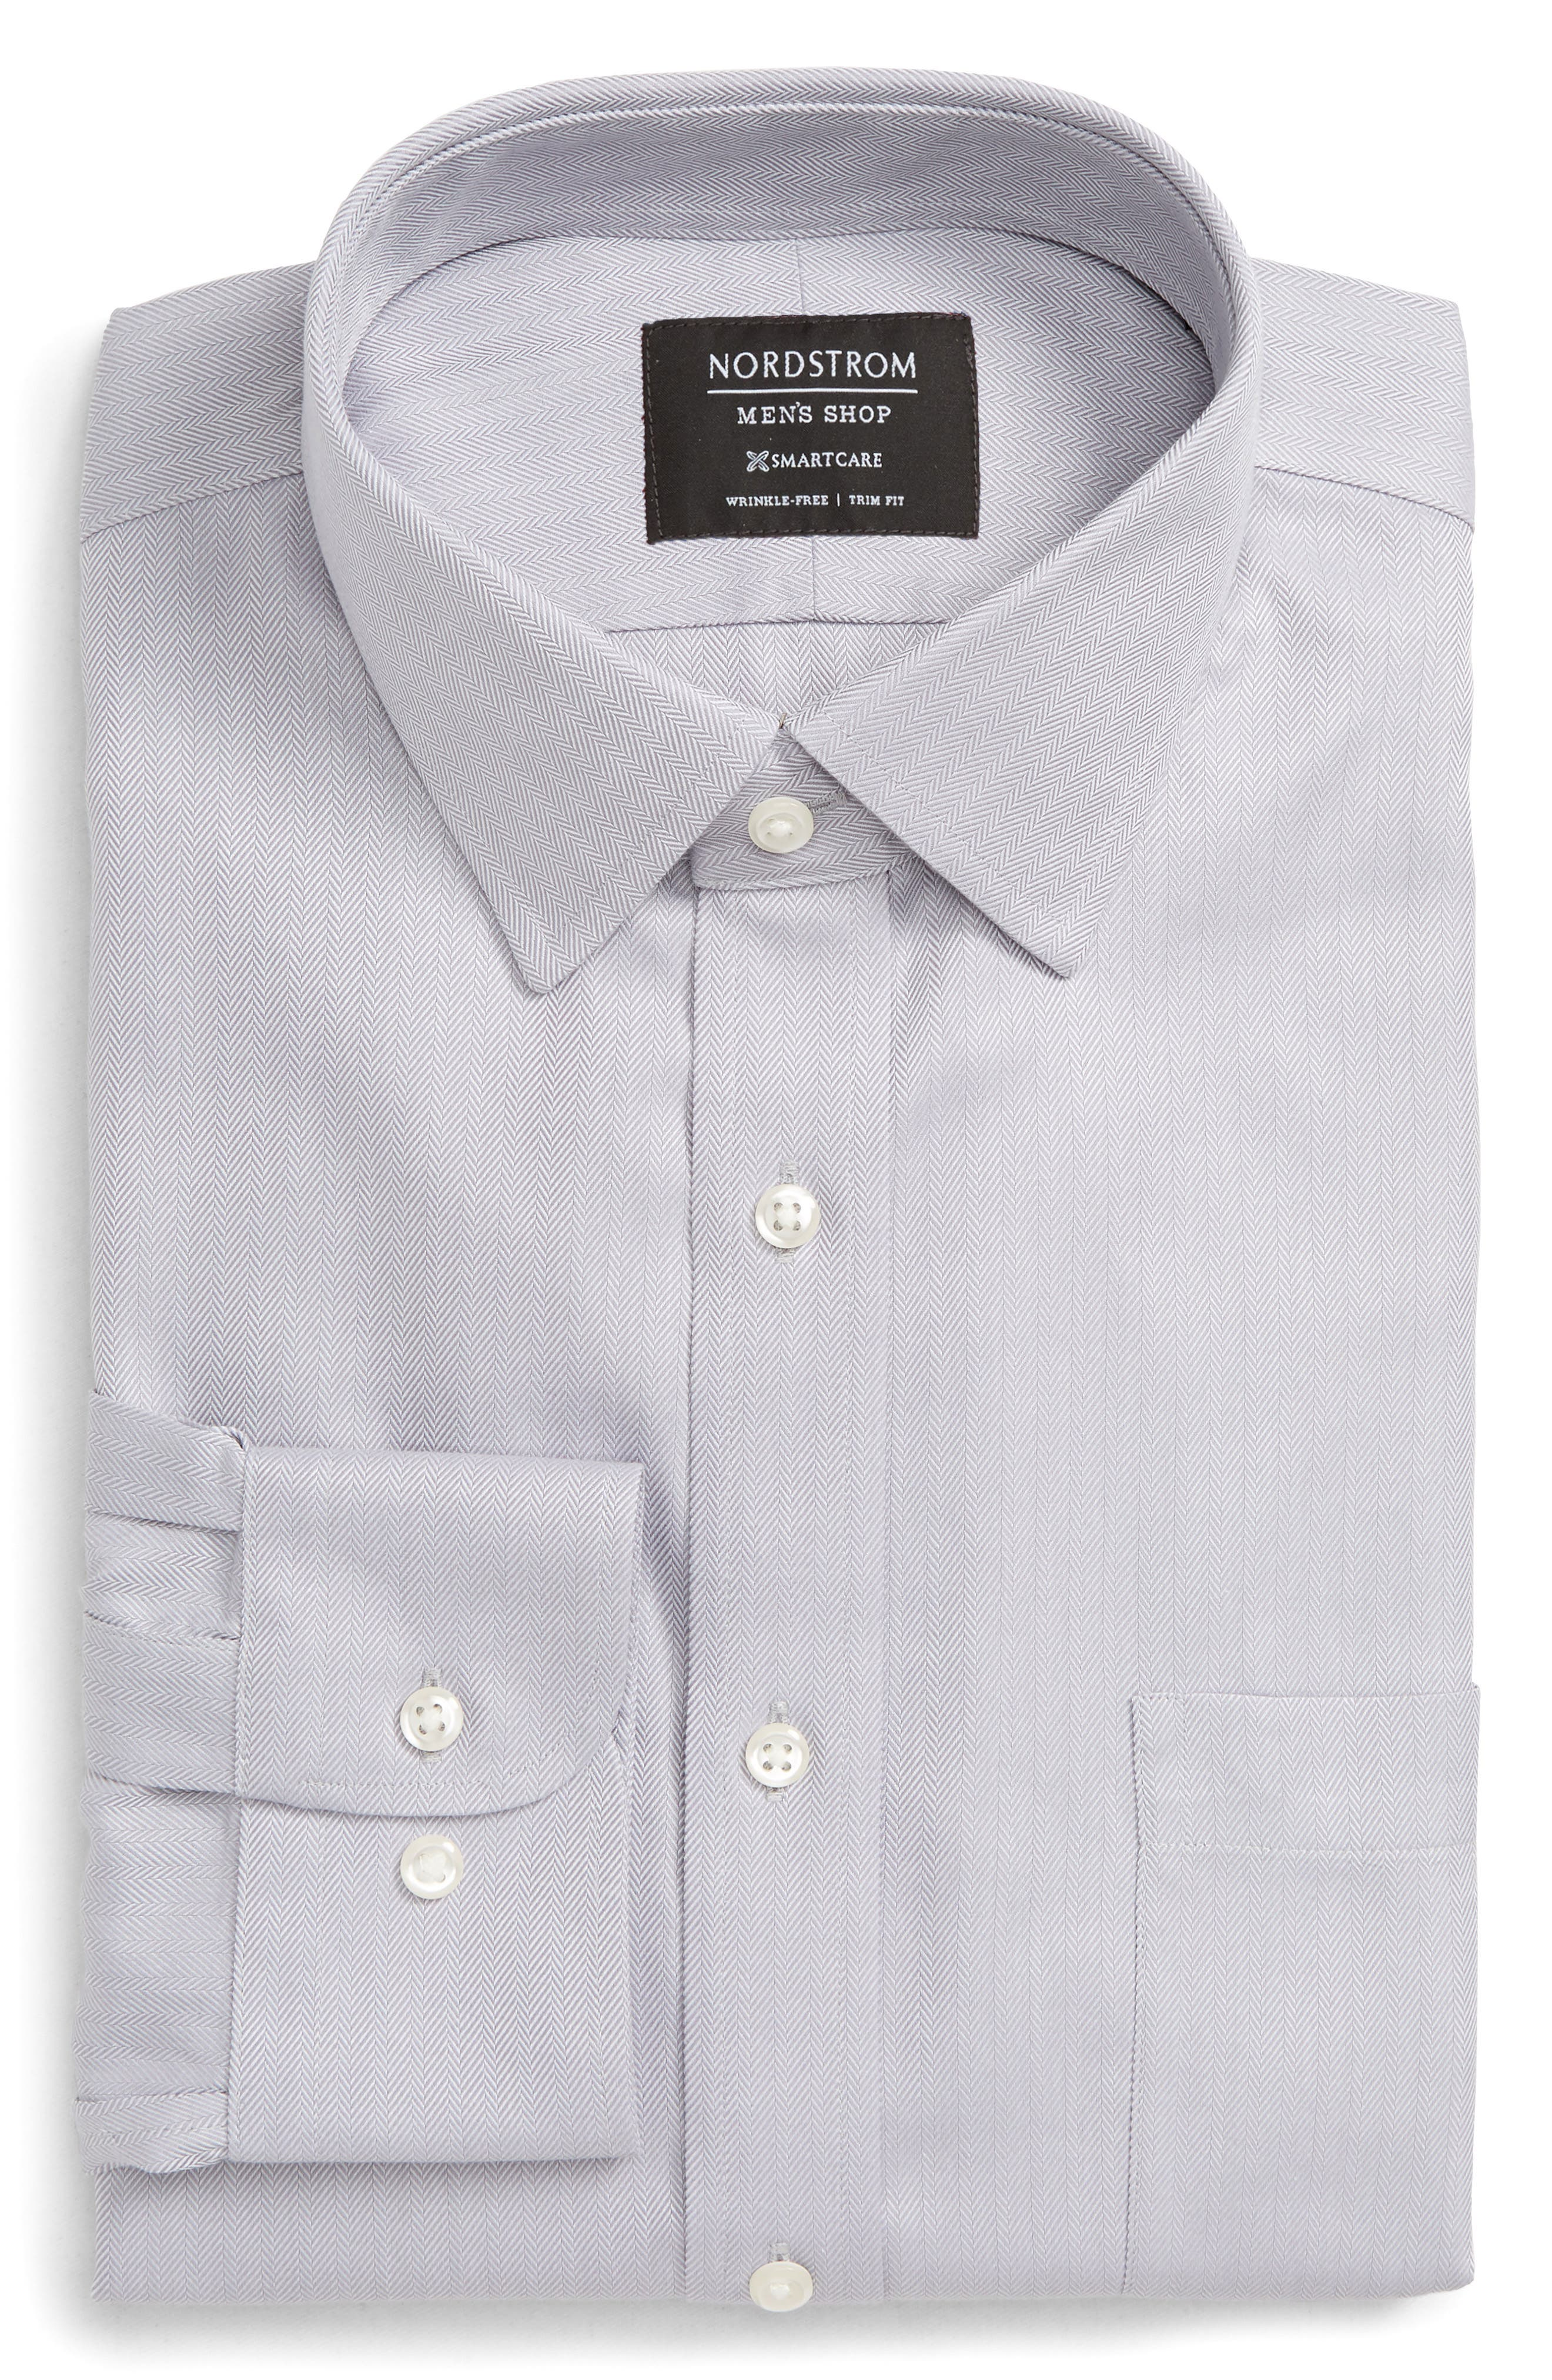 Nordstrom Shop Smartcare(TM) Trim Fit Herringbone Dress Shirt - Grey